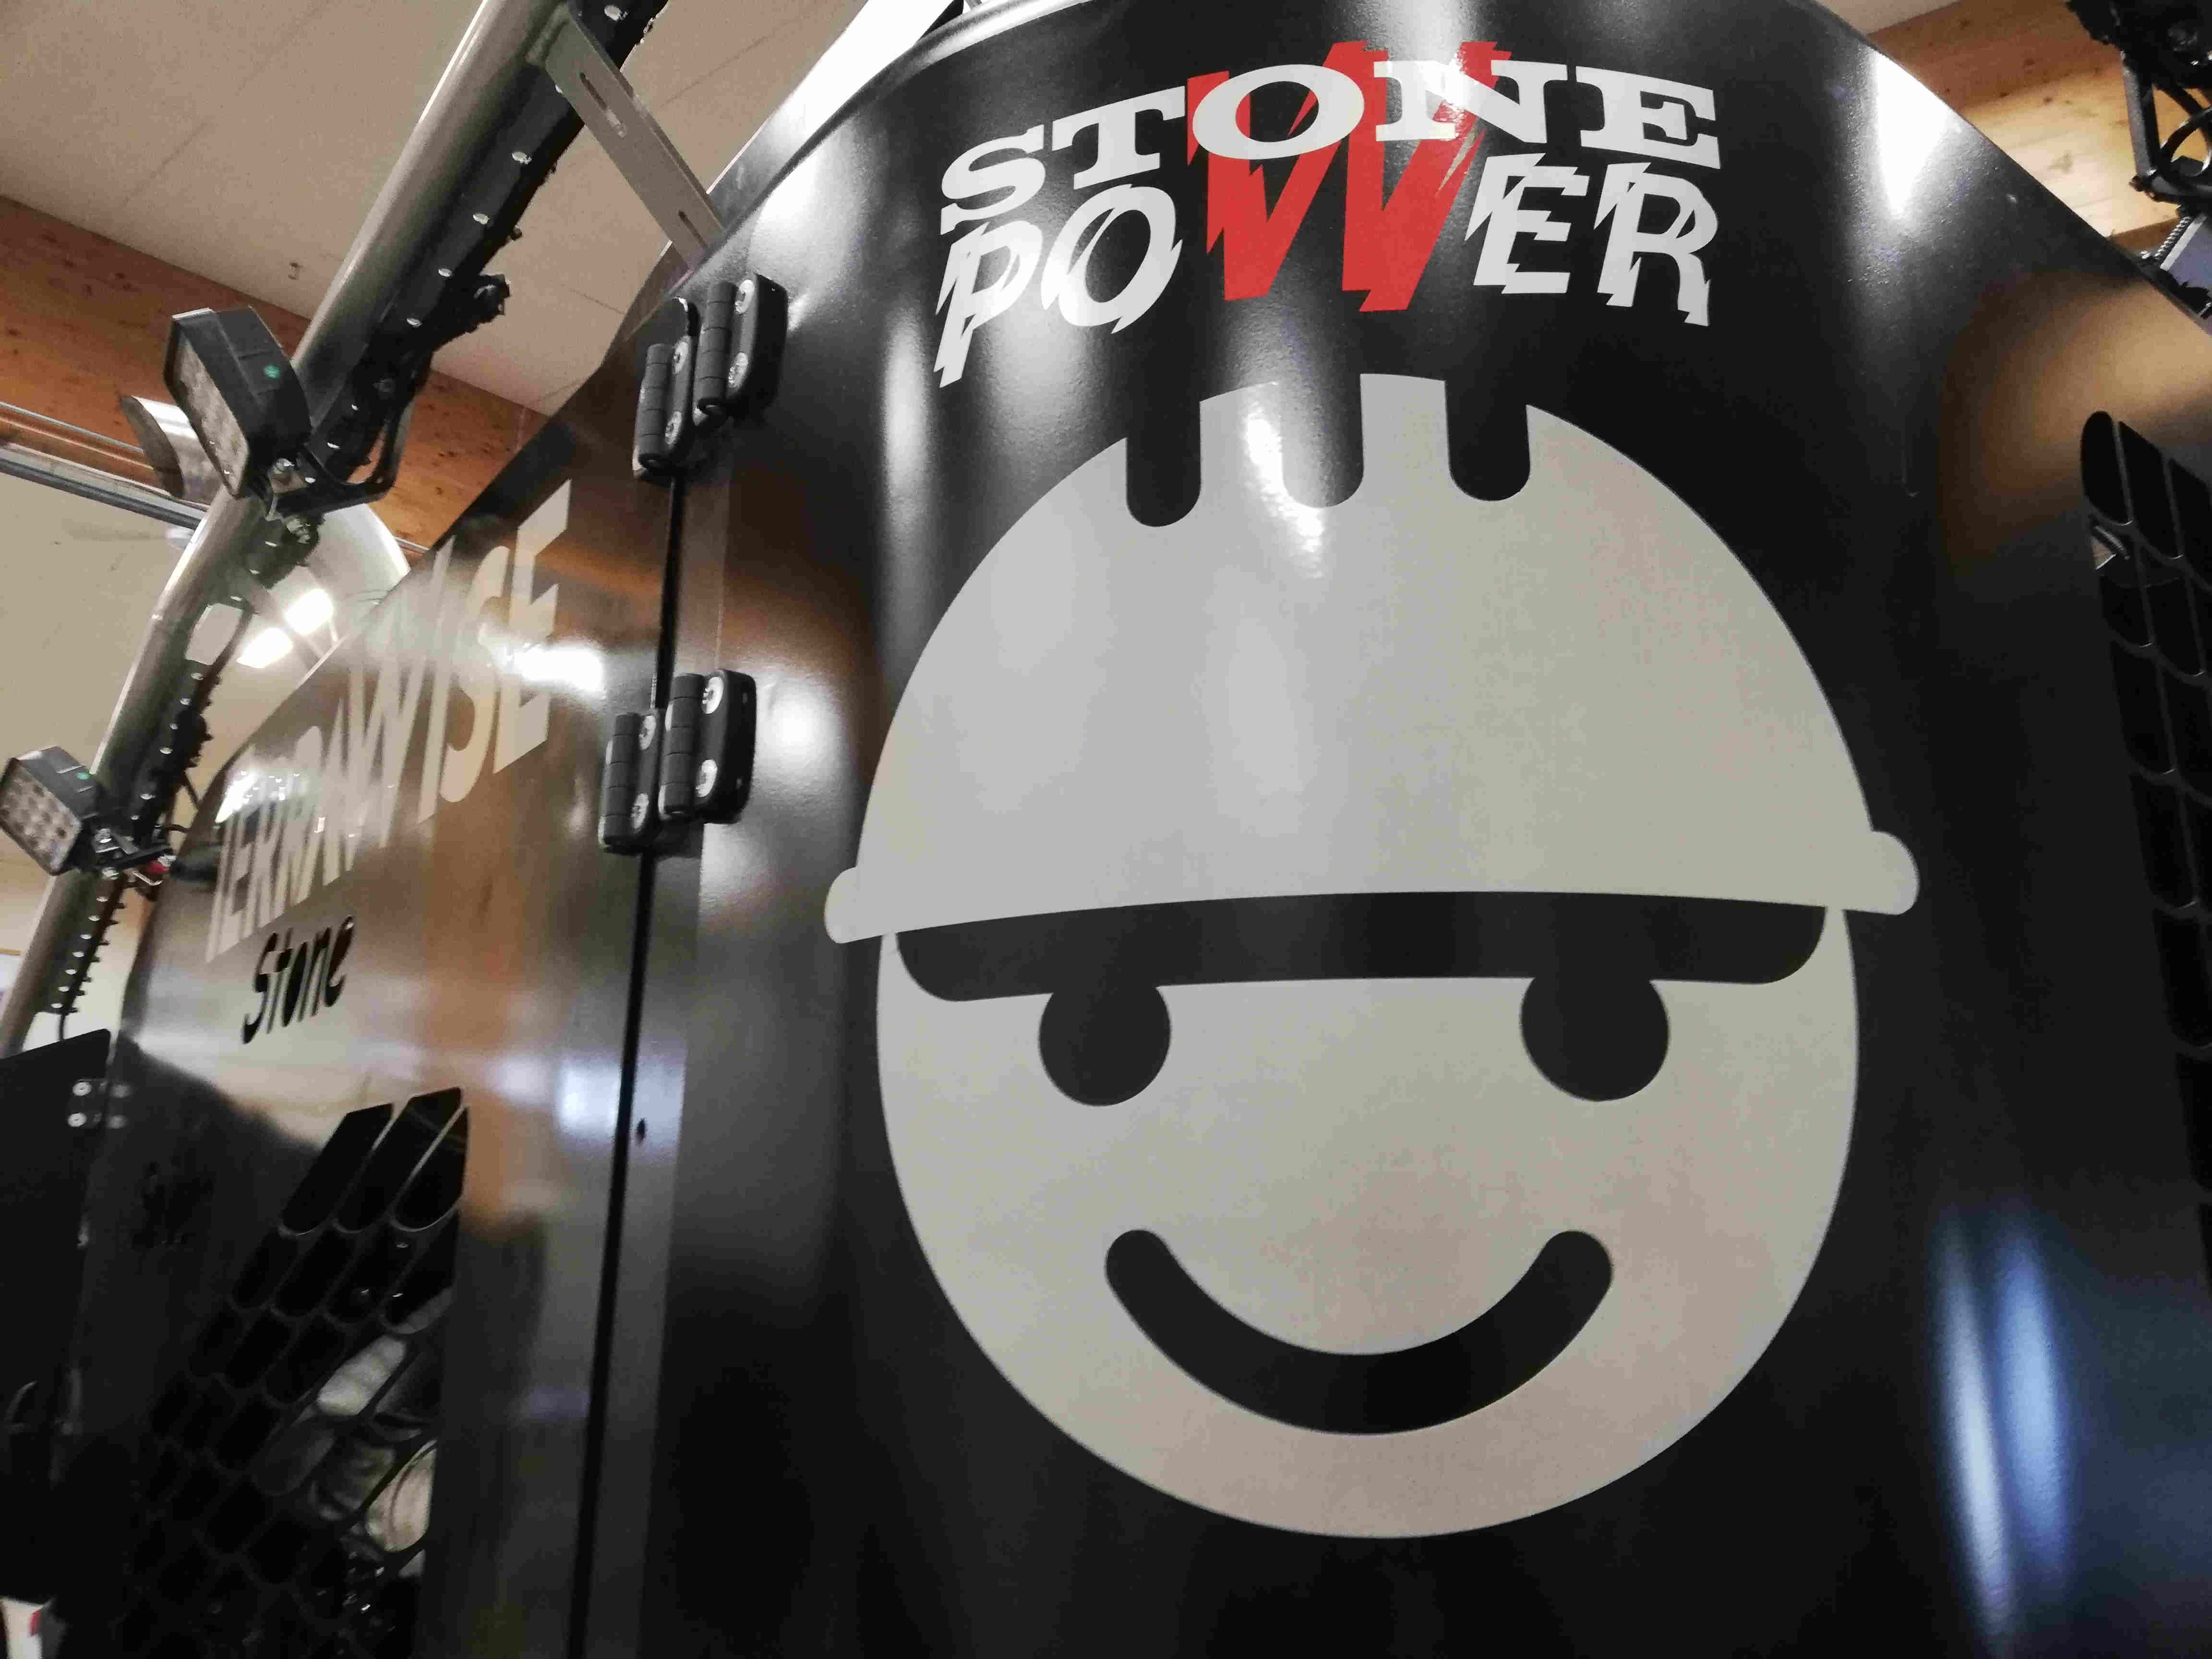 Stone spider, Terrawise sticker